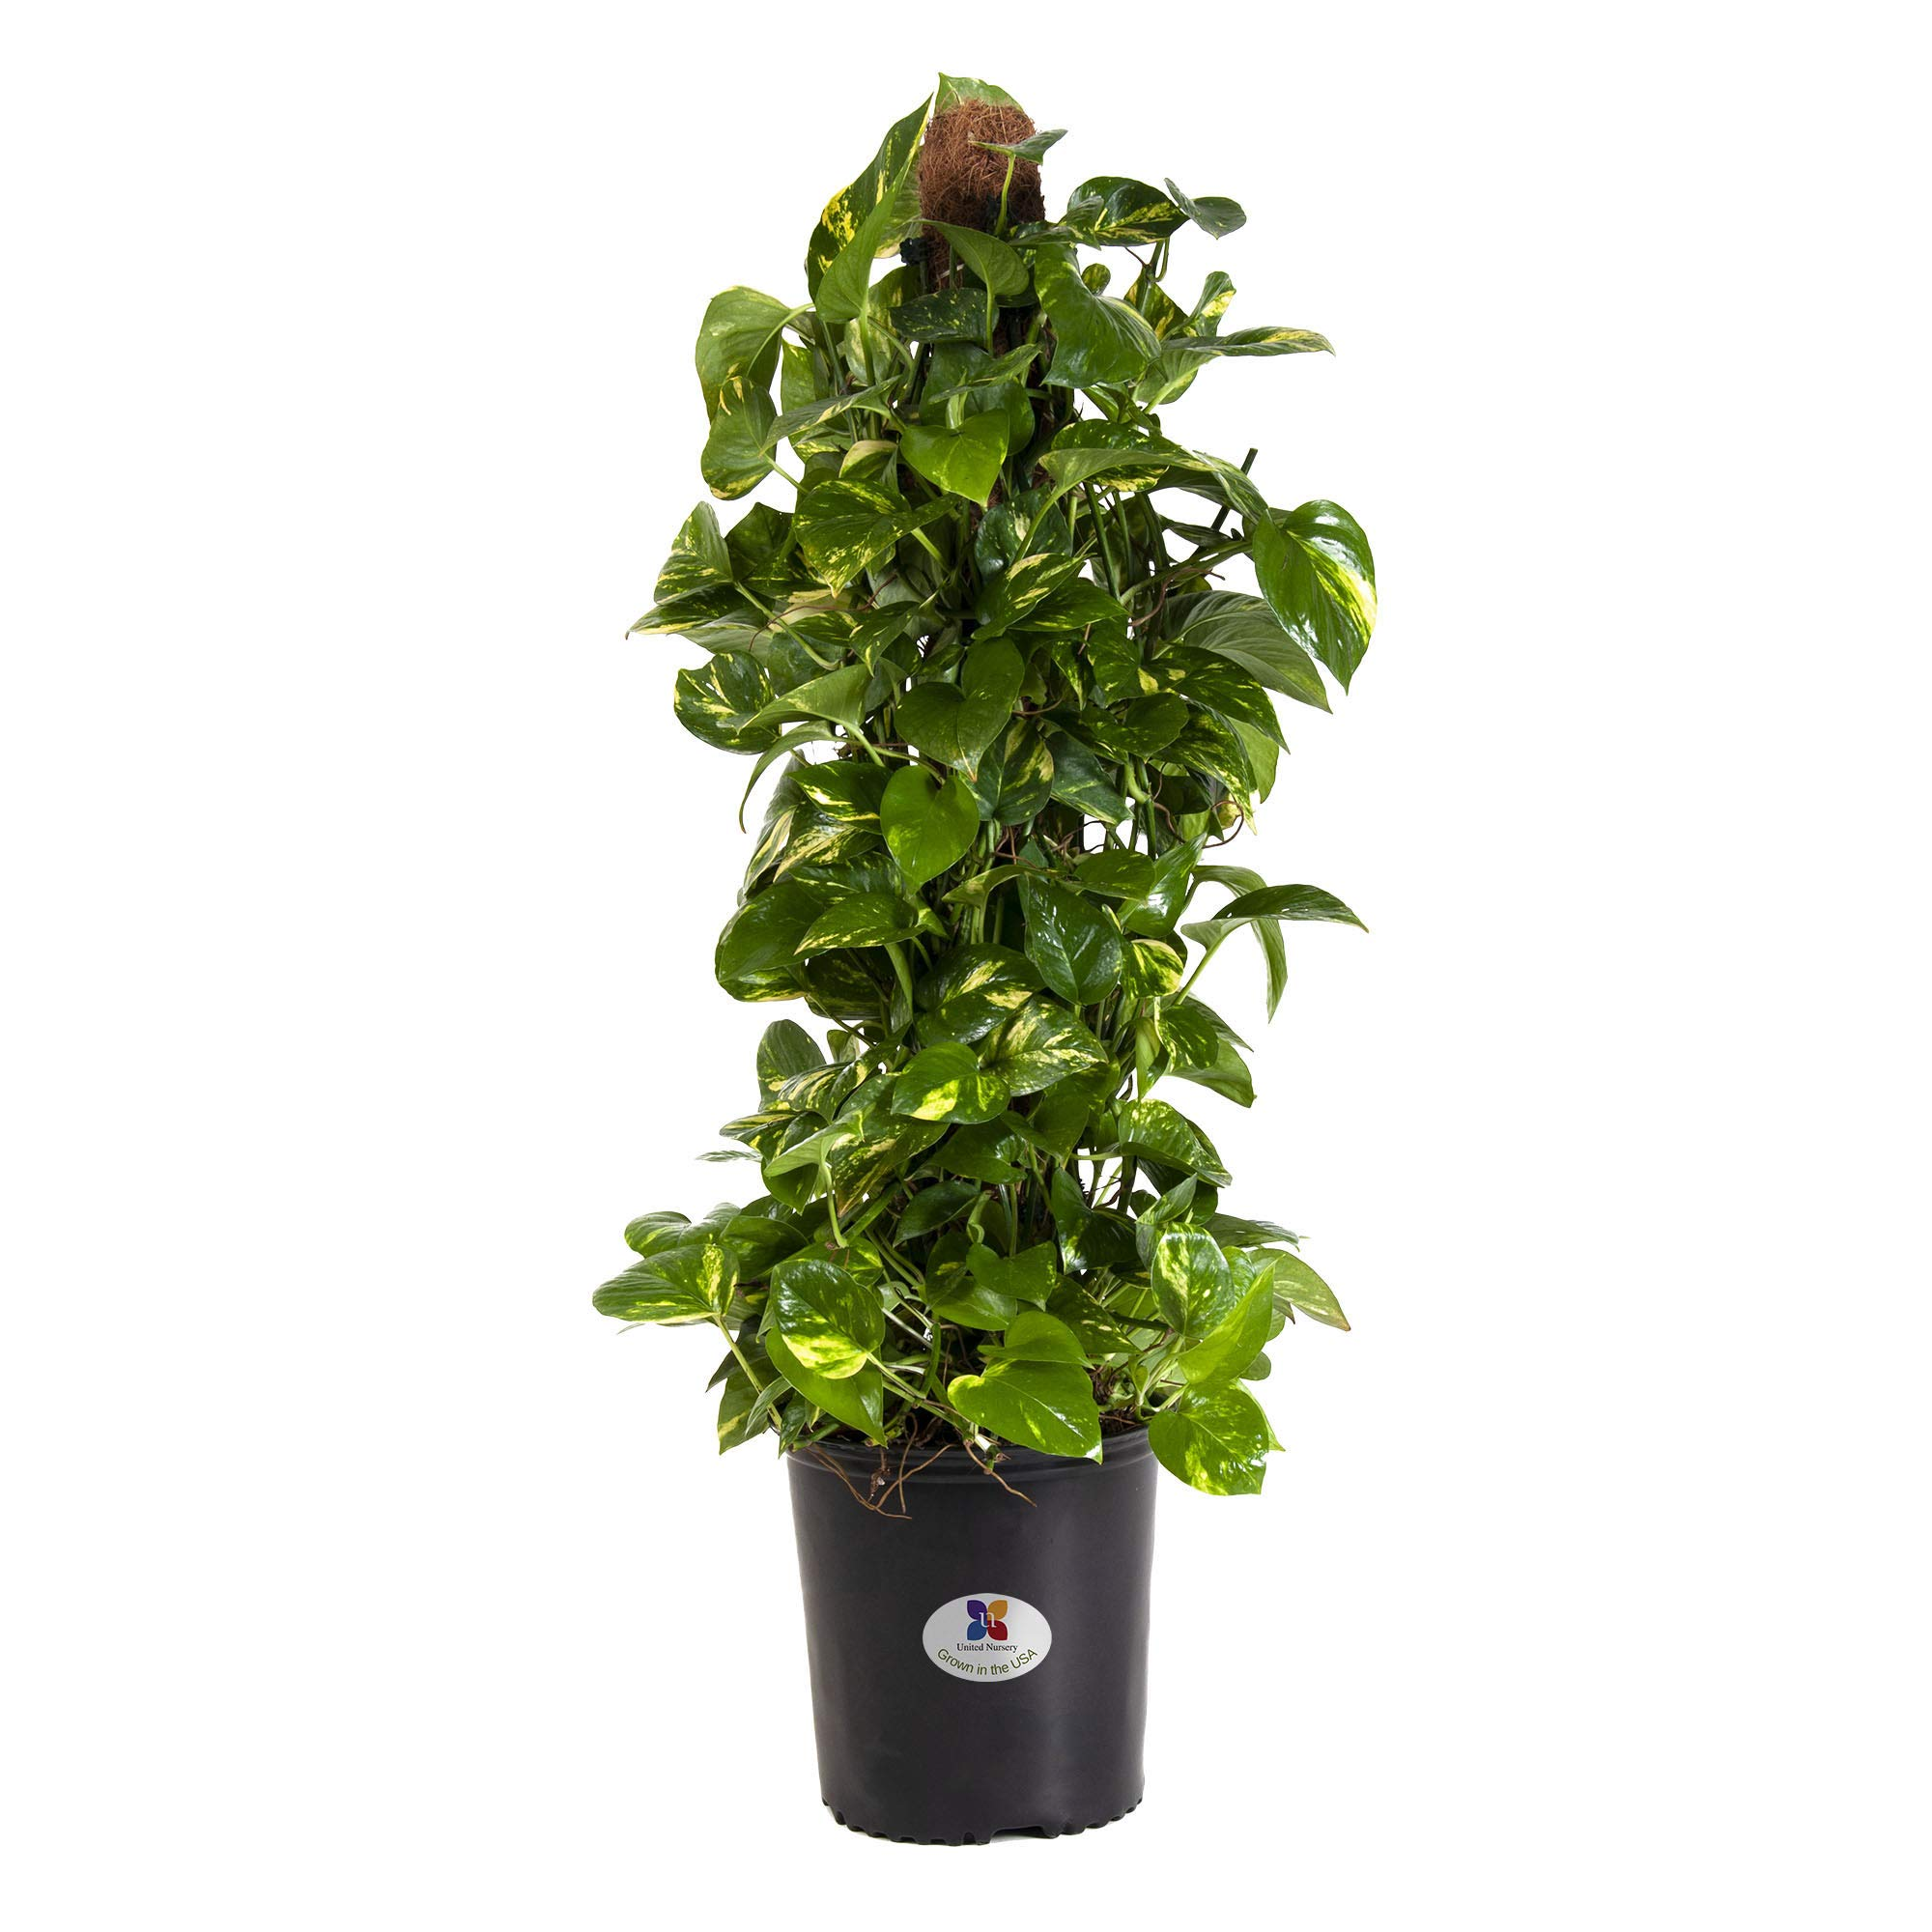 United Nursery Golden Pothos Totem Live Indoor Air Plant. 38'' Shipping Size. Shipped Fresh in Grower Pot from Our Florida Farm